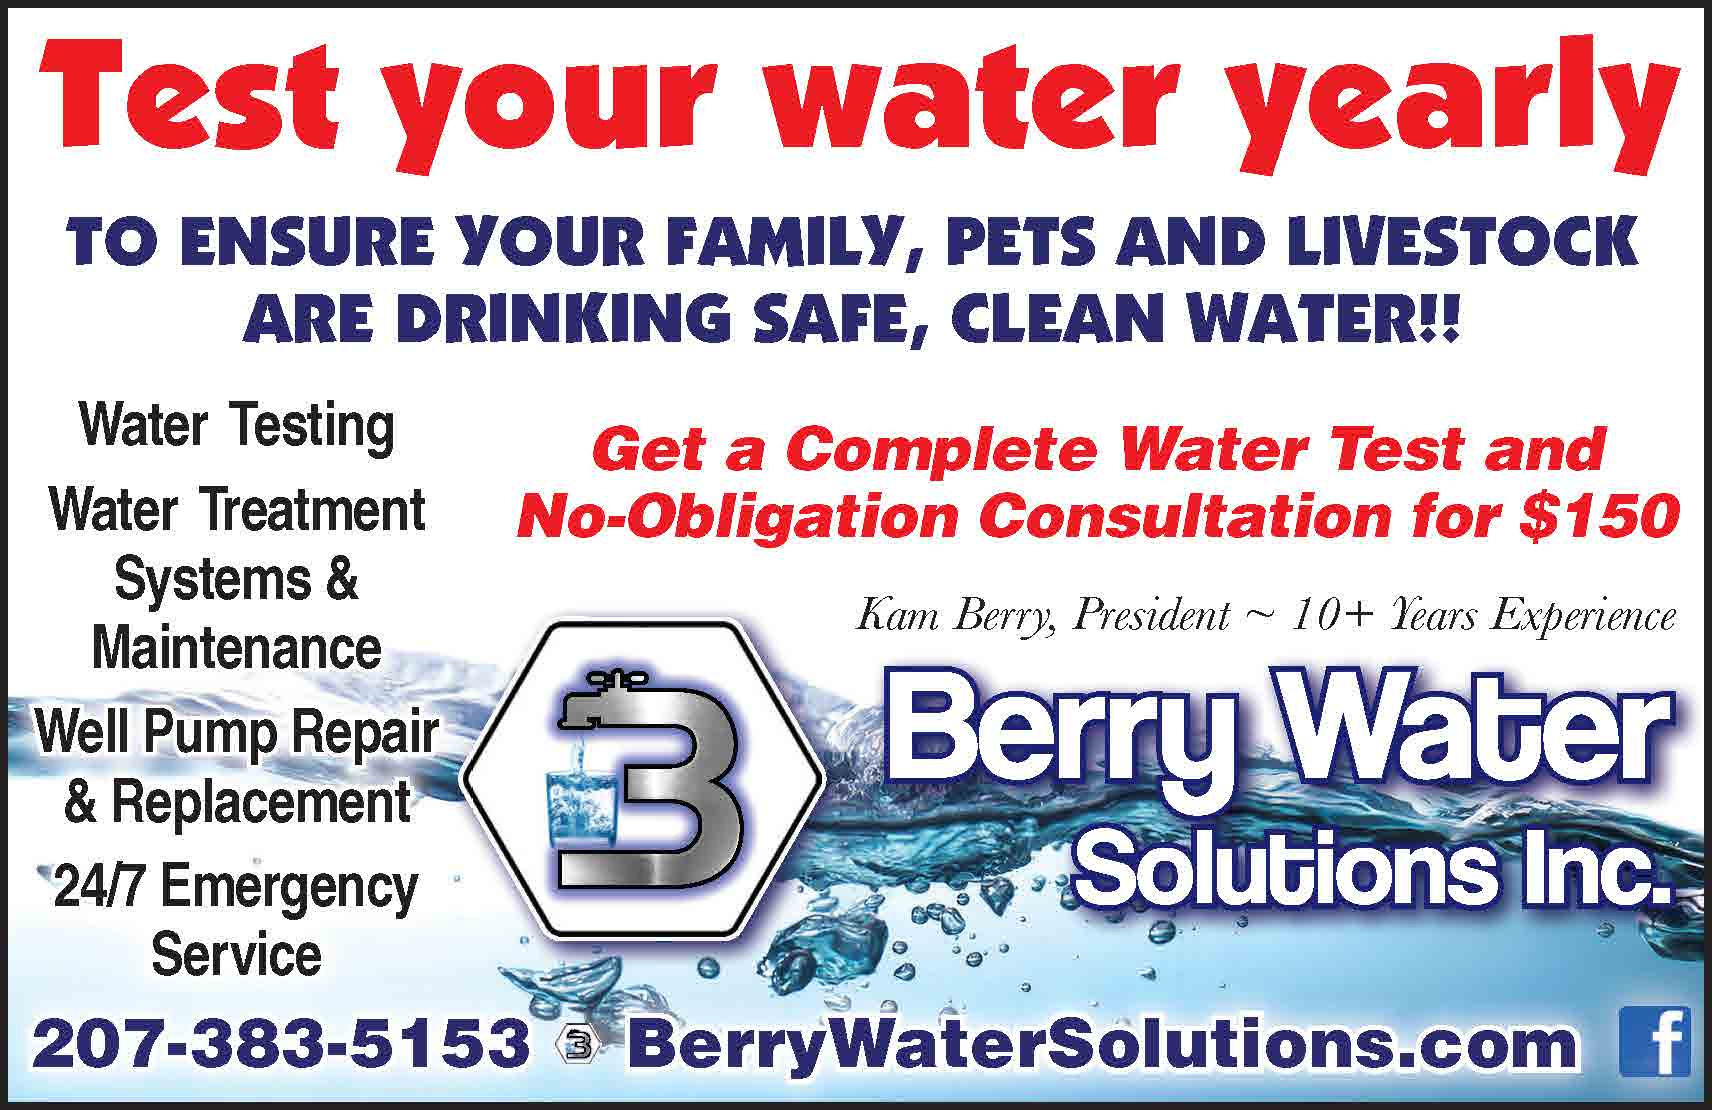 https://berrywatersolutions.com/